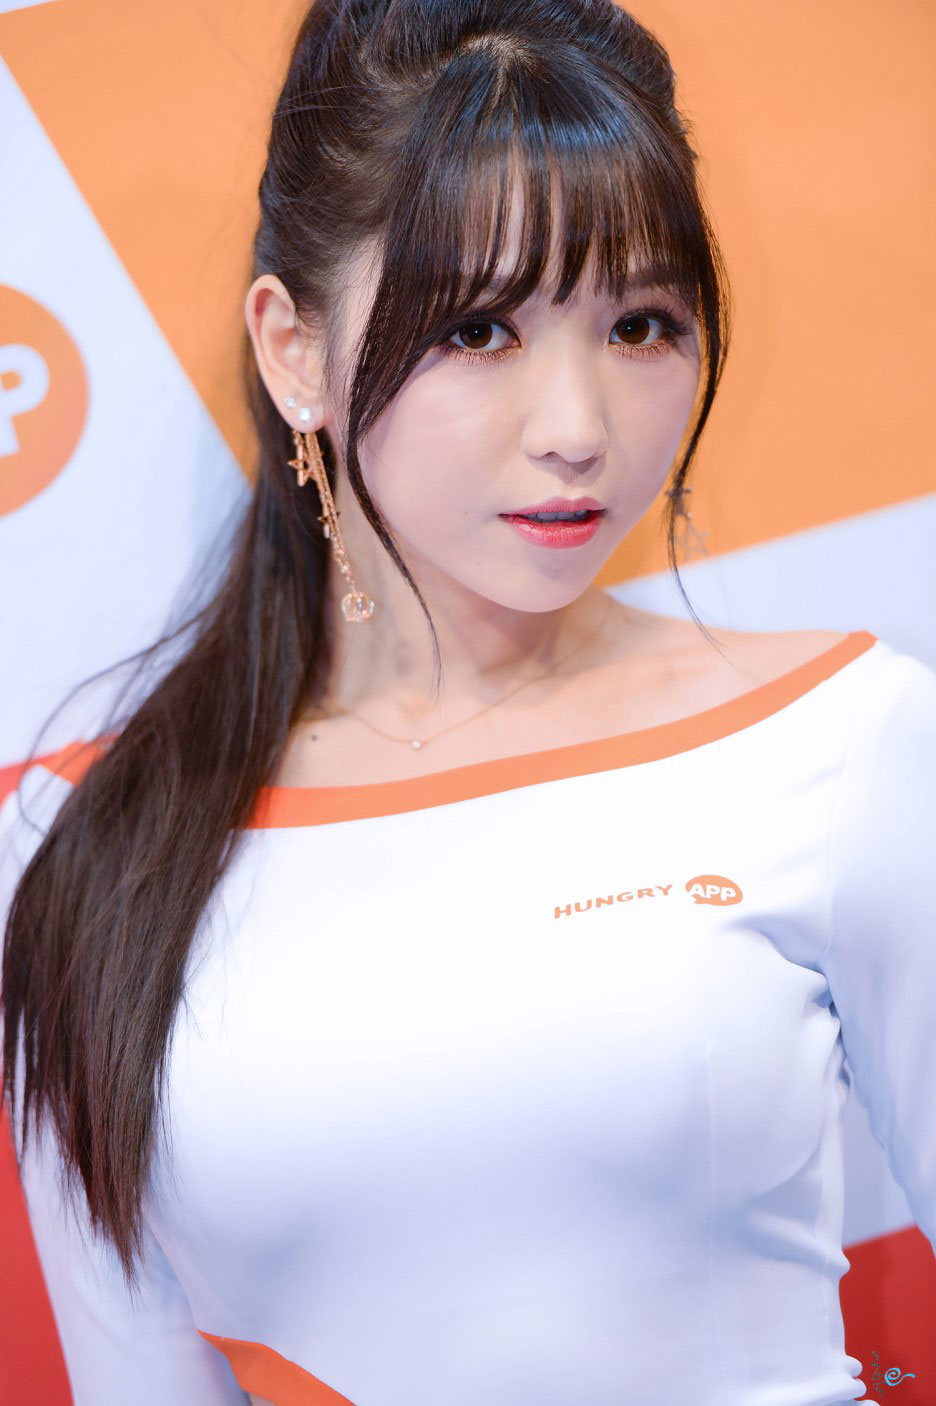 Lee Eun Hye GSTAR 2015 Hungry App